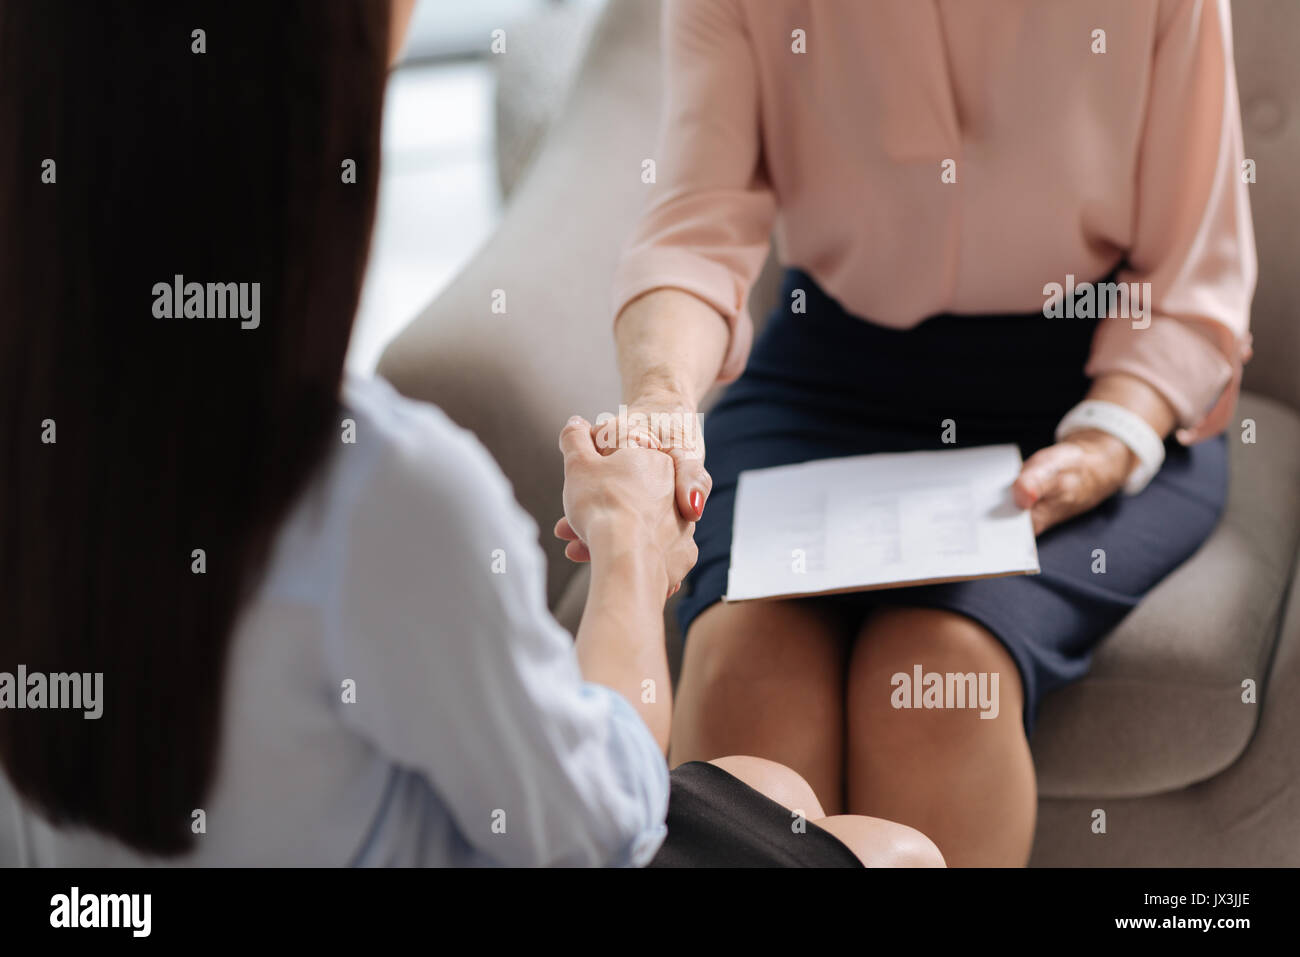 Close up of a friendly handshake - Stock Image